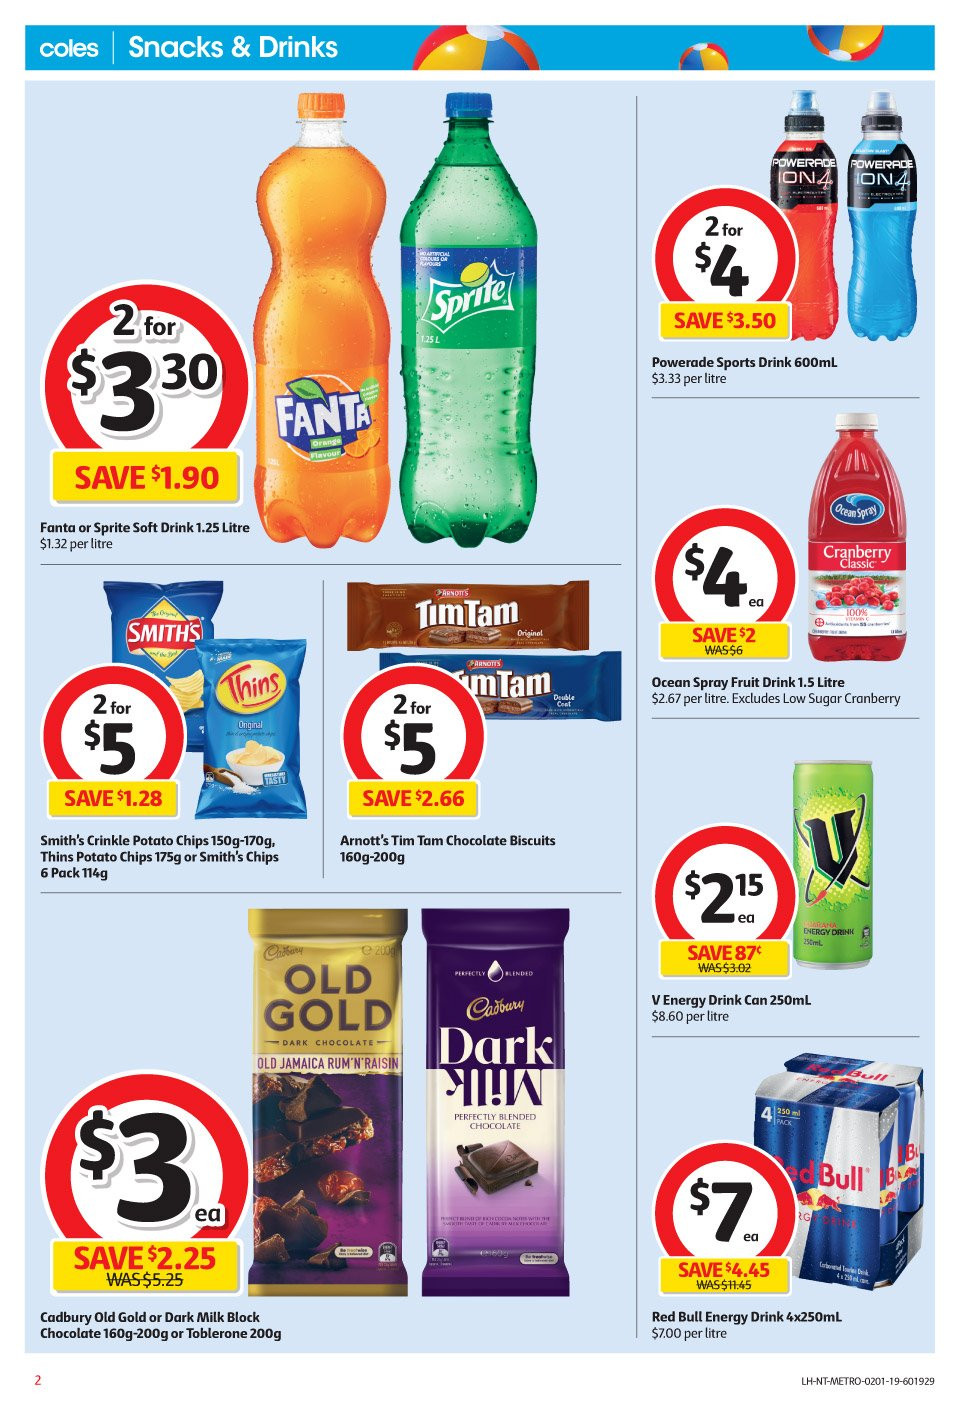 Coles catalogue and weekly specials 2 1 2019 - 8 1 2019   Au